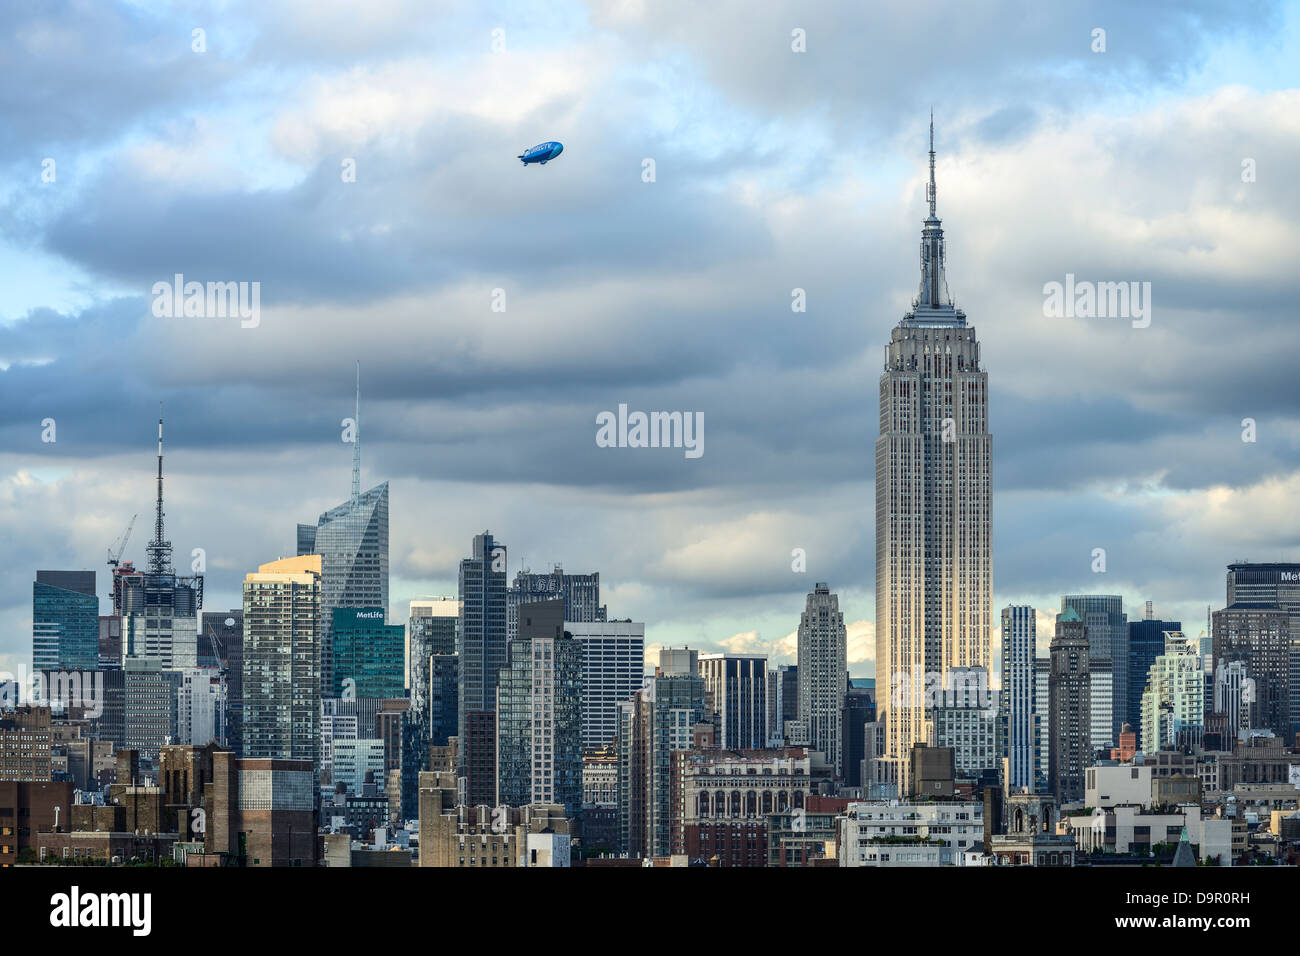 The Direct TV Blimp flying over New York City during US Open Tennis 2012 in a beautiful cloudy day - Stock Image